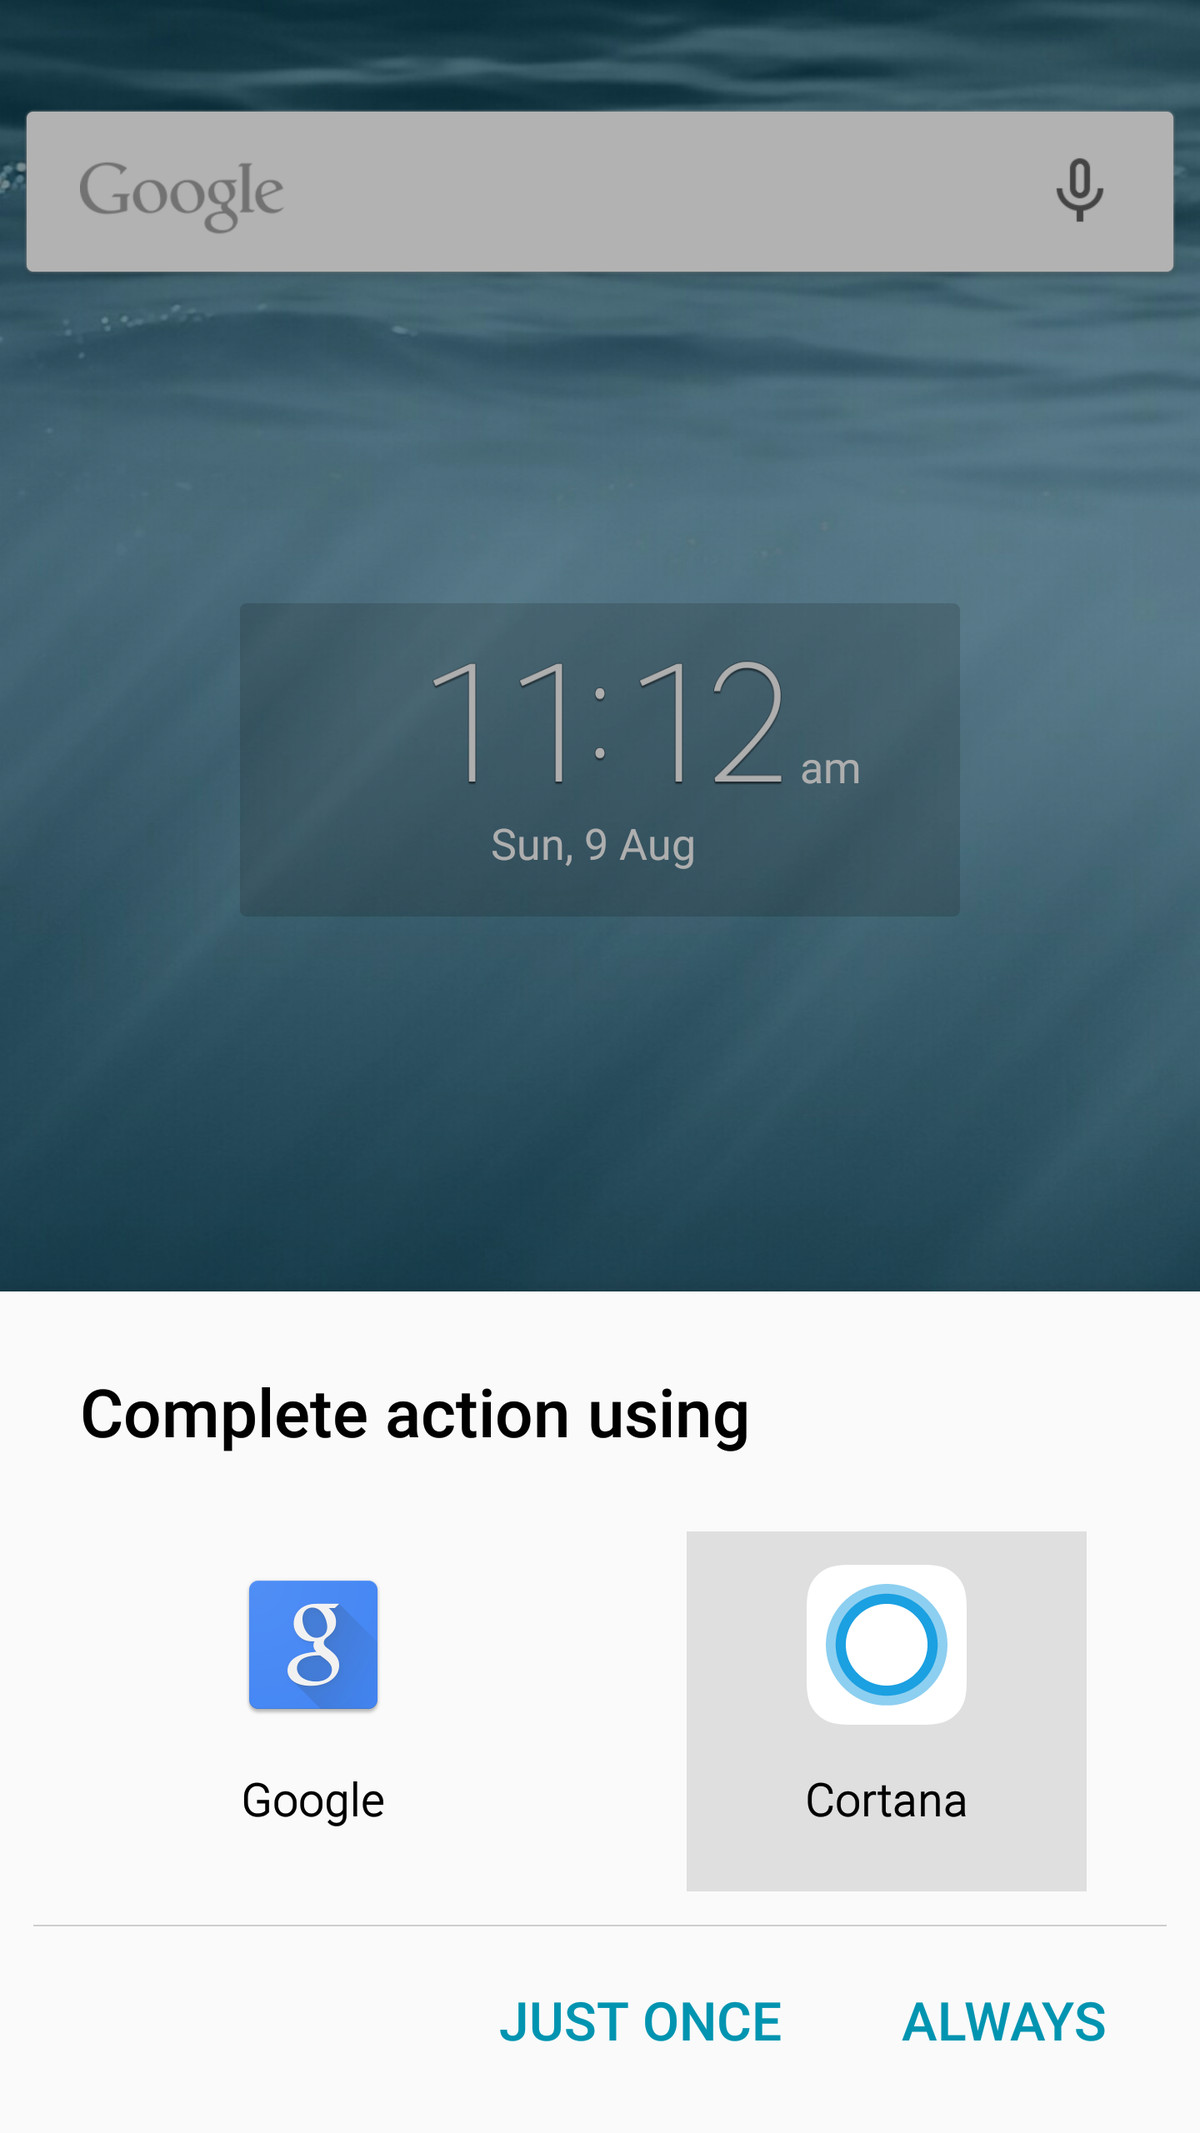 Cortana Android prompt